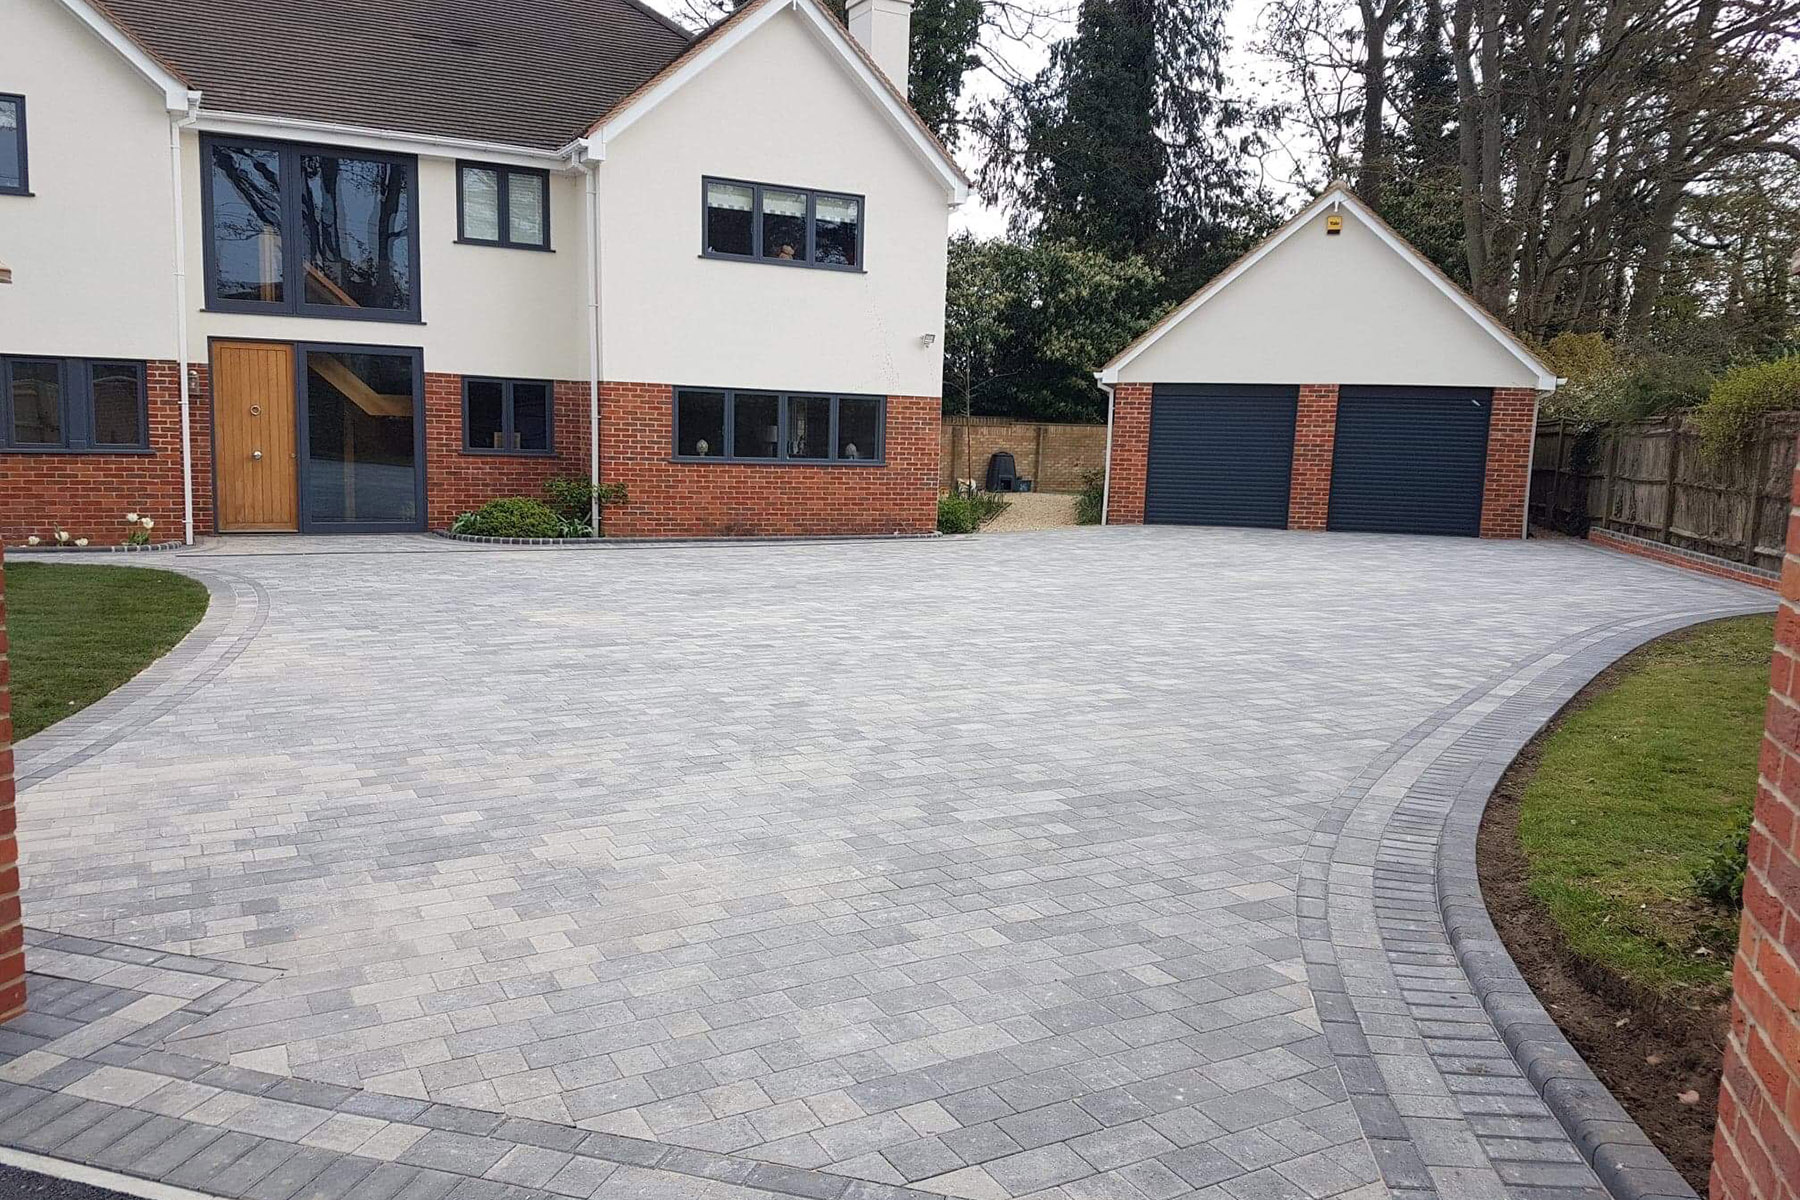 Driveway design and reconstruction in Henley-on-Thames